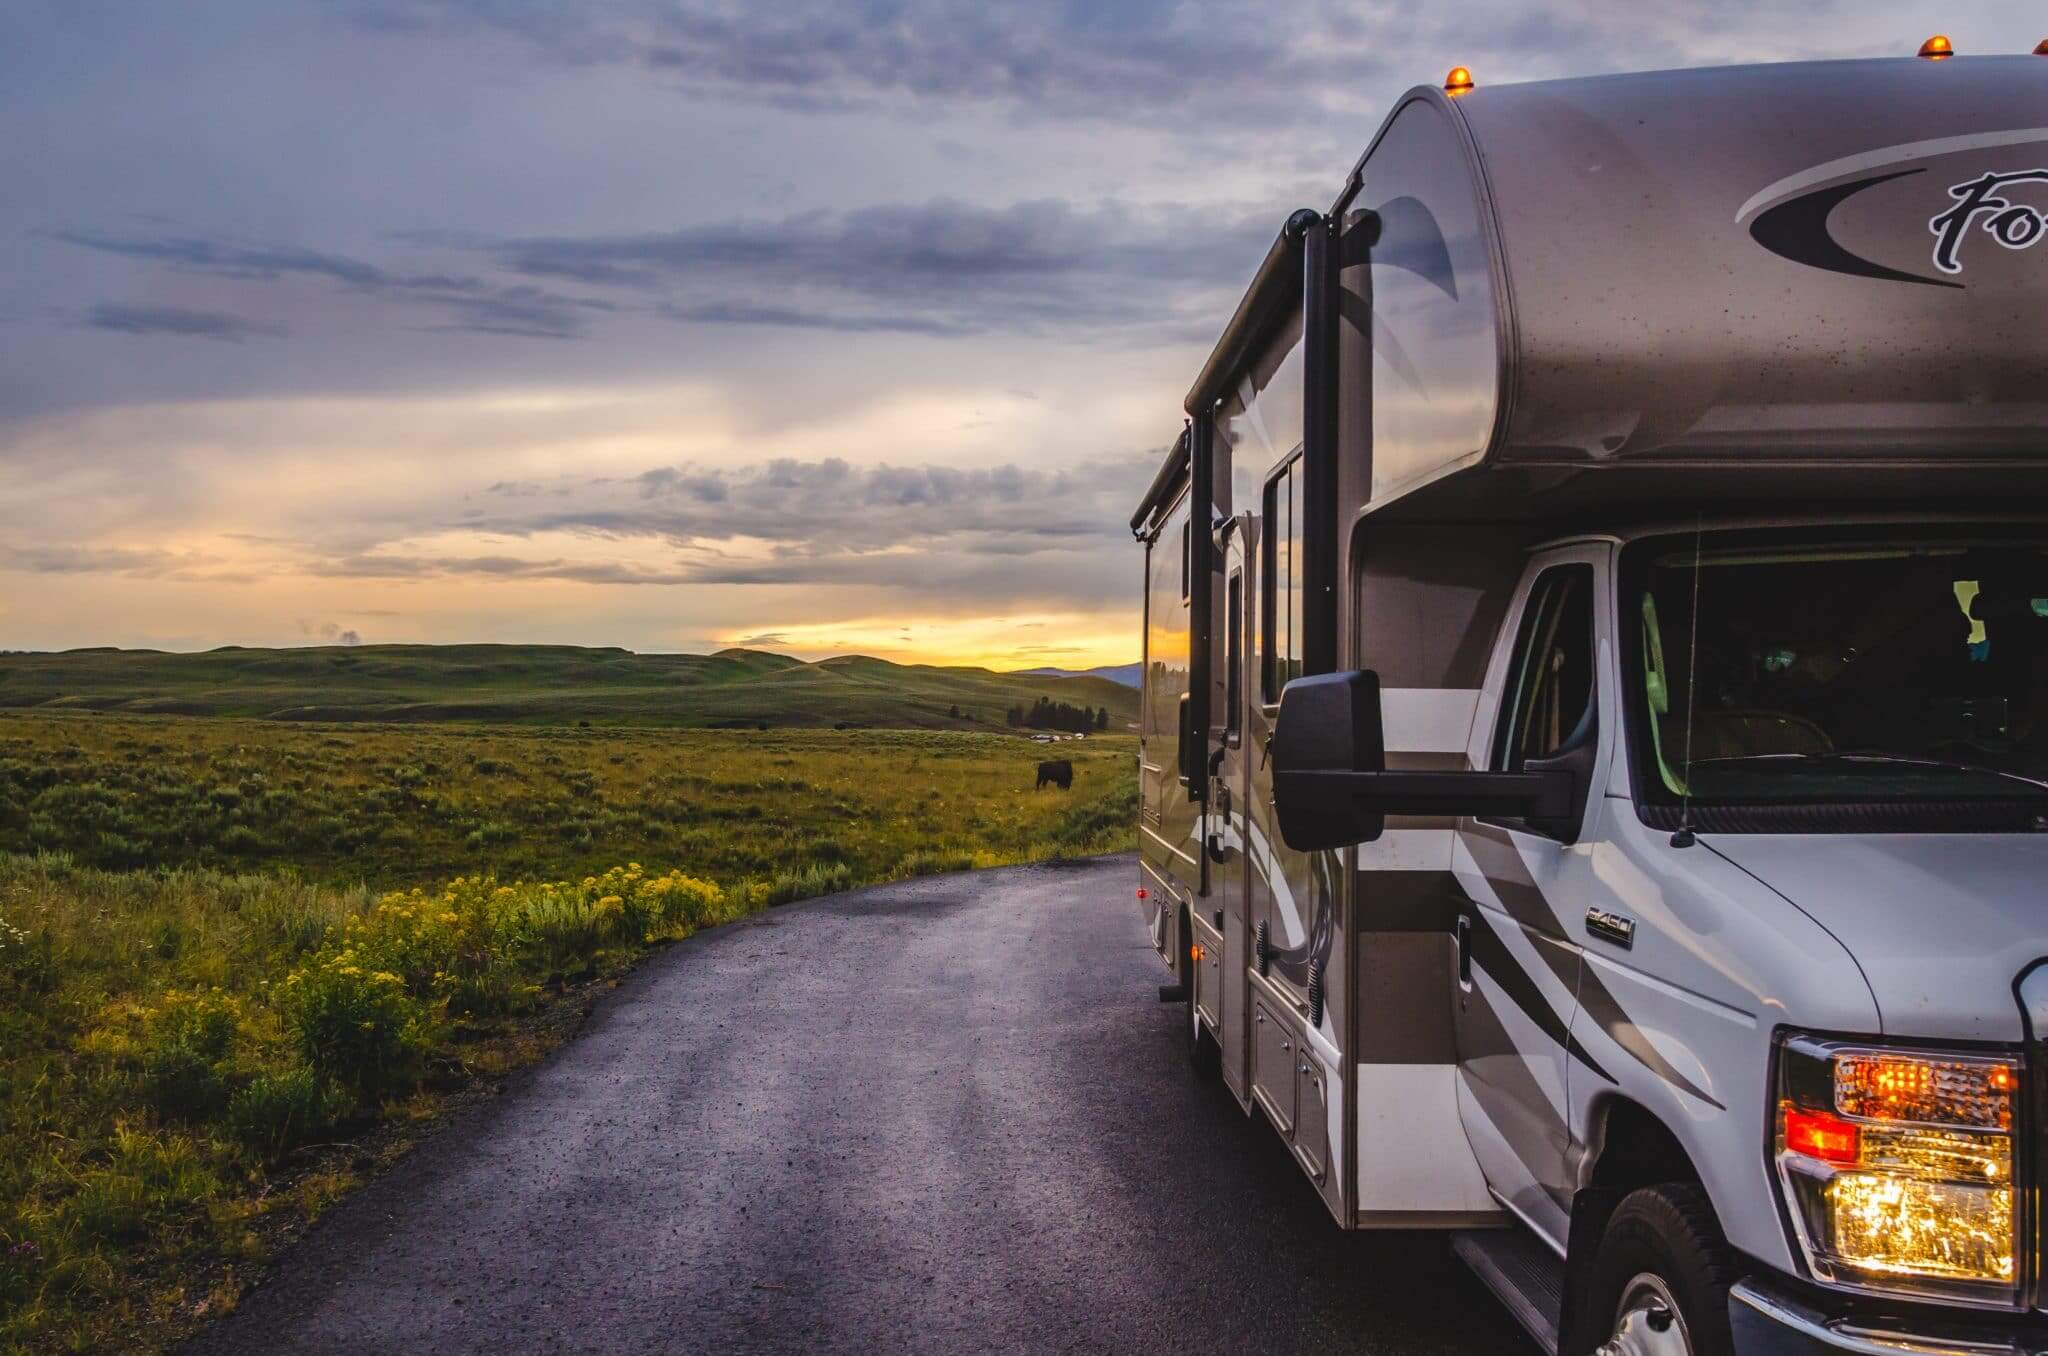 Is Good Sam RV Insurance Right For You?